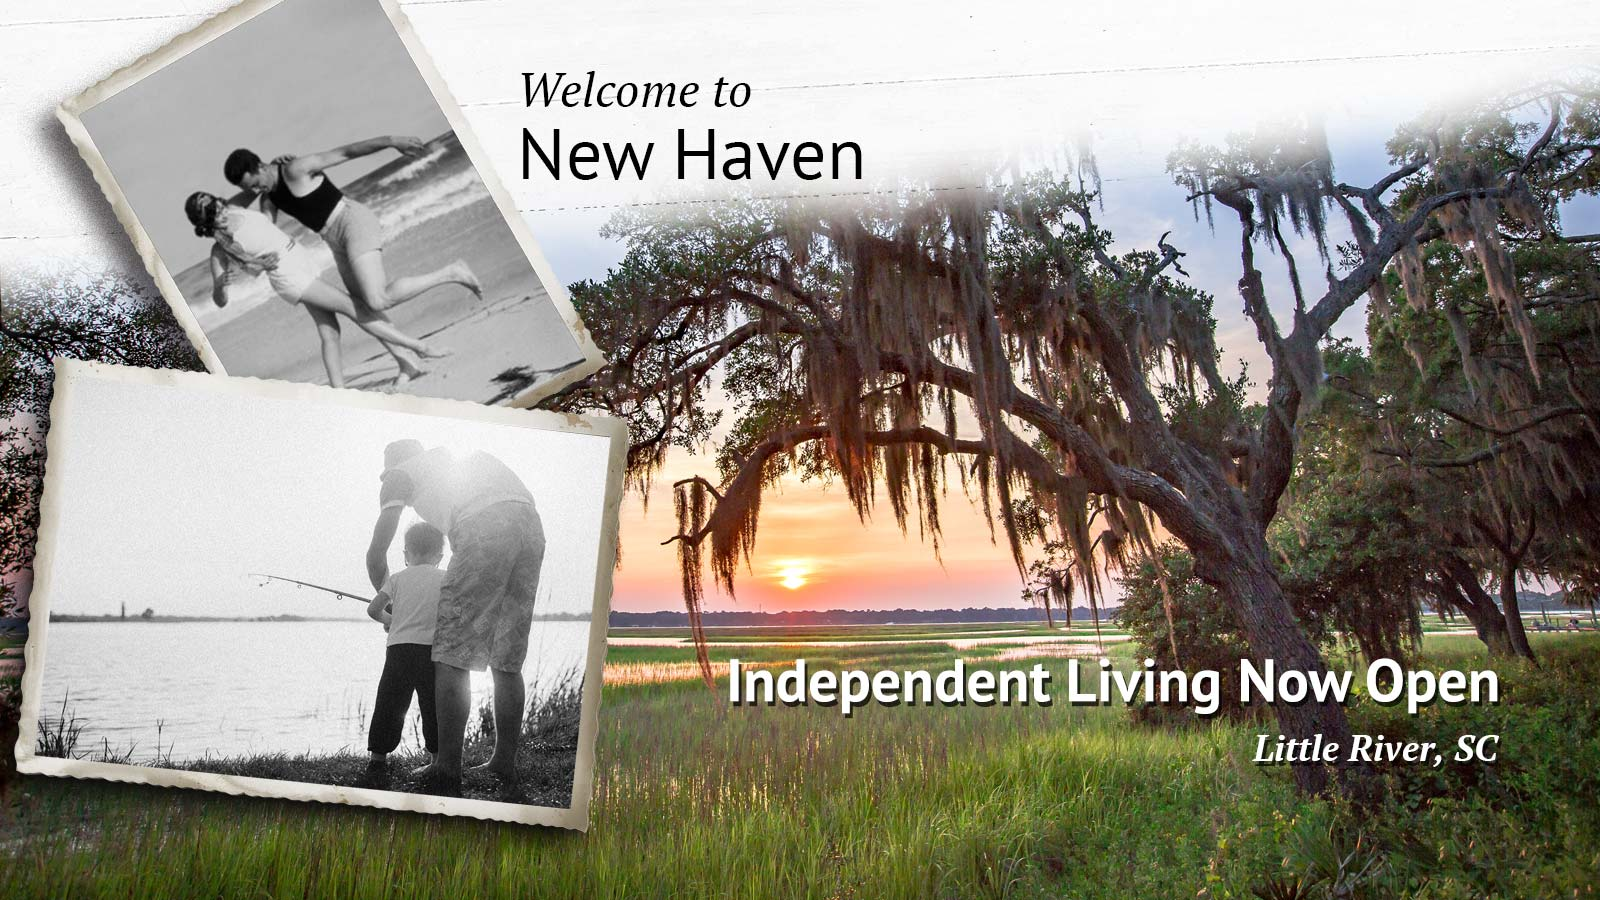 Welcome to New Haven in Little River, SC. Now open for Independent Living.